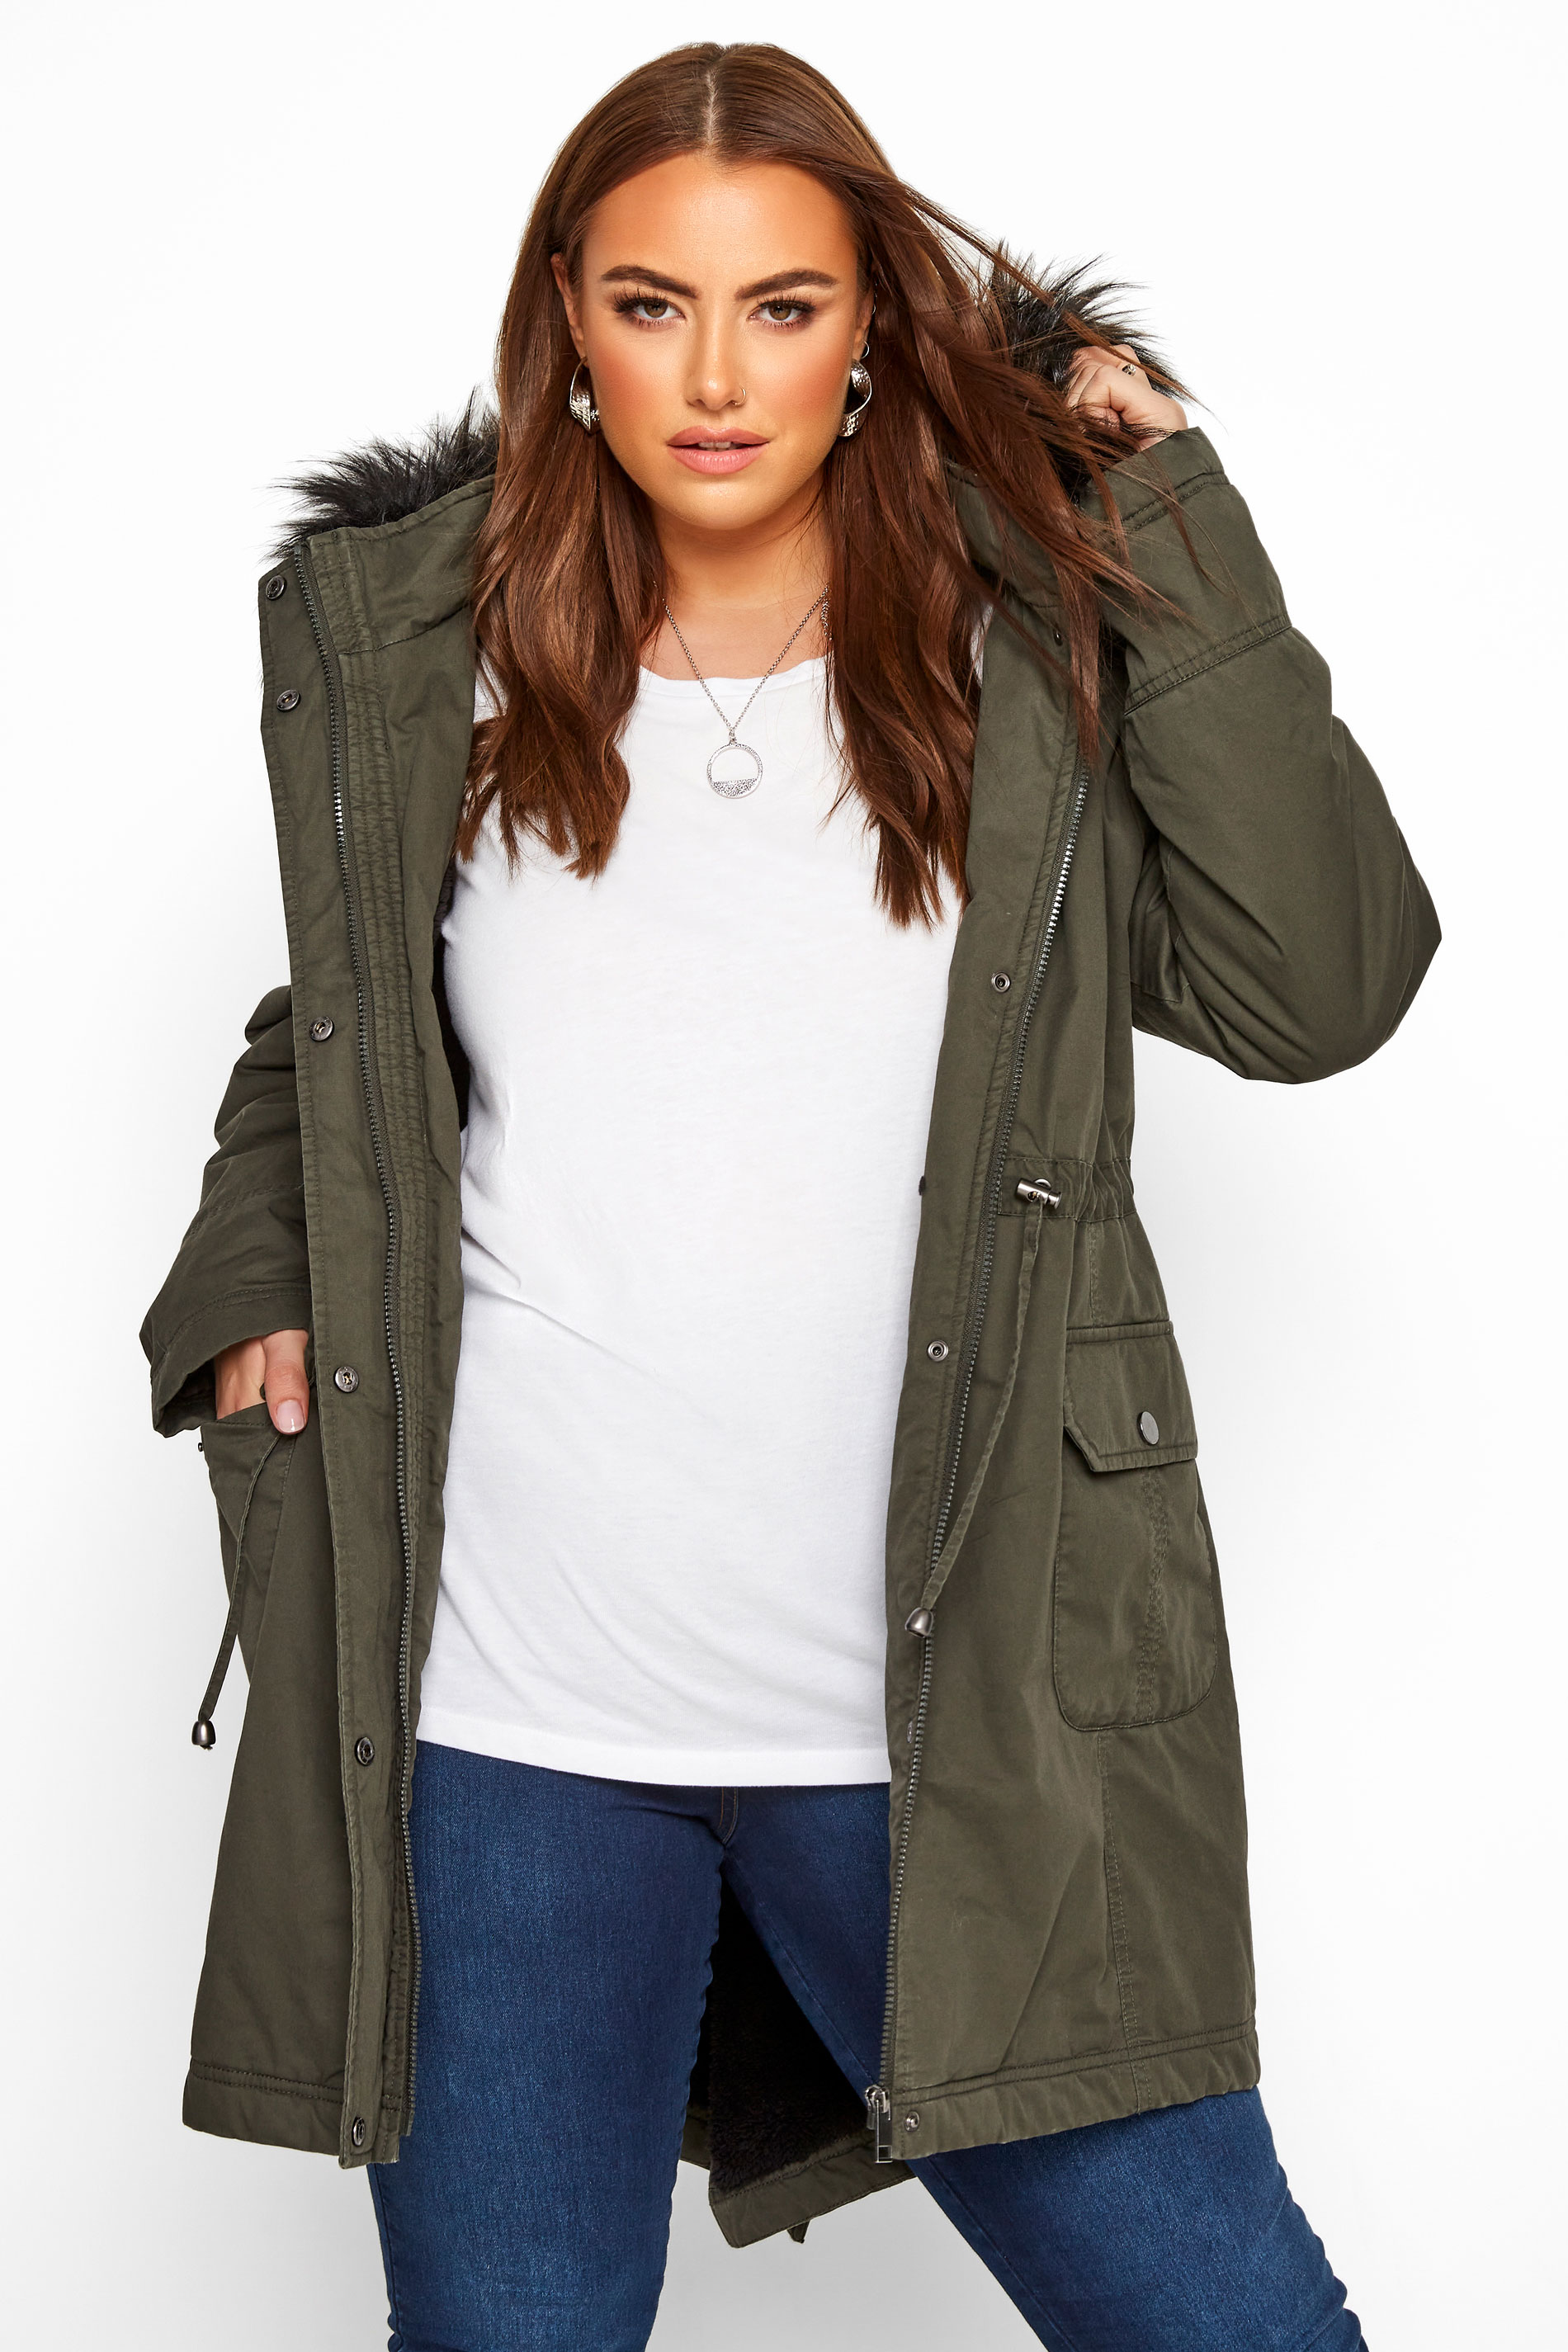 Khaki Fleece Lined Faux Fur Trim Parka Jacket